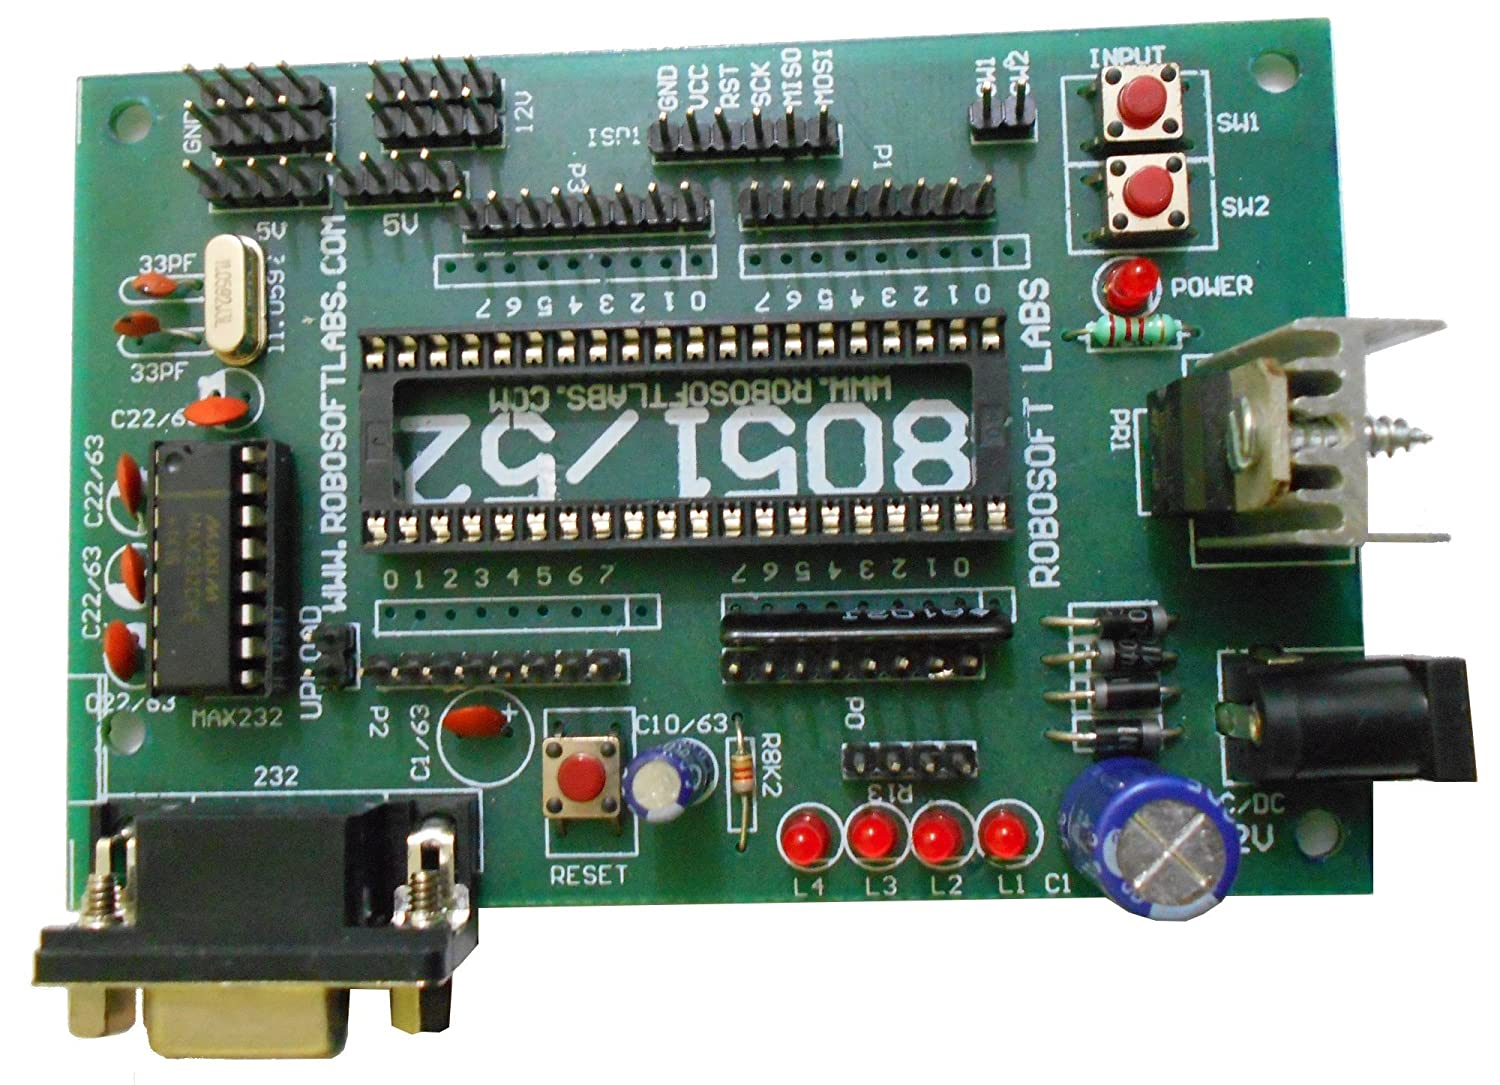 Buy Robosoft Labs 8051 8052 40 Pin Microcontroller Development Reset Circuit Board With Rs232 Online At Low Prices In India